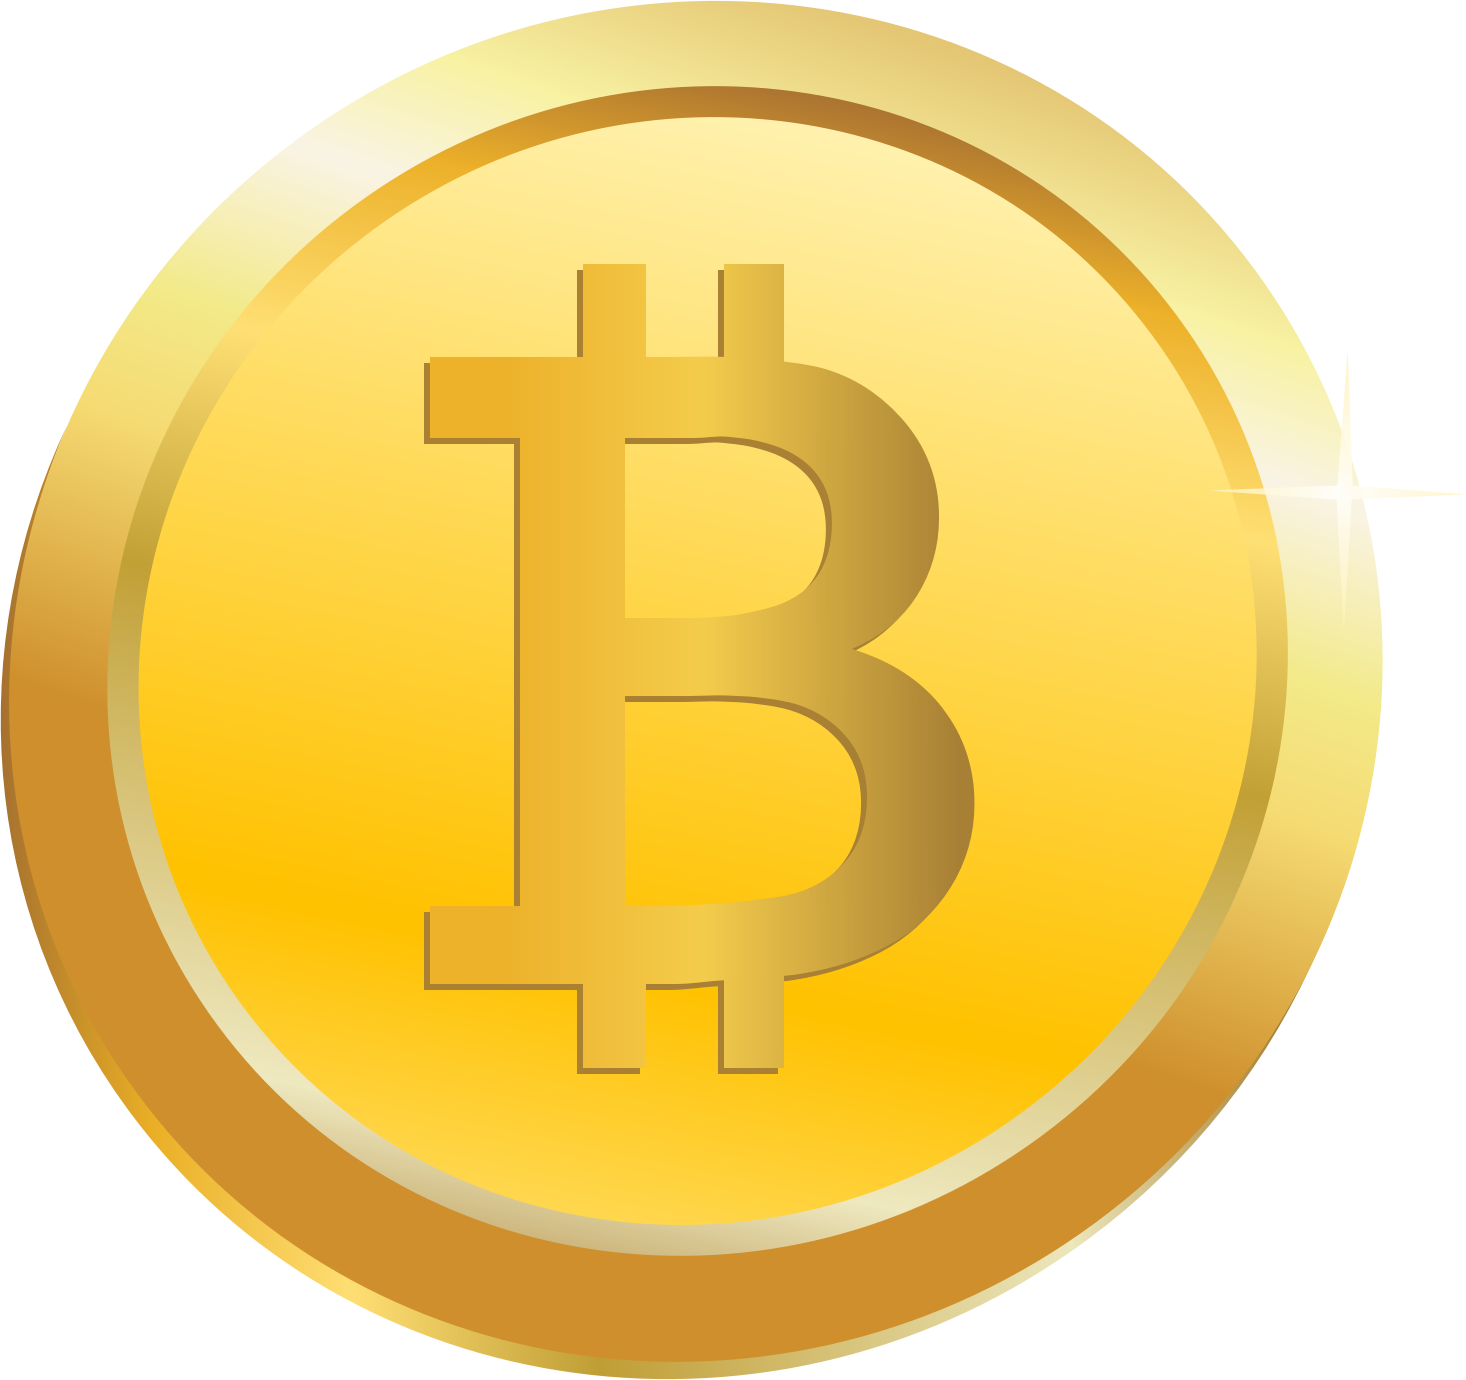 Cryptocurrency Money Steemit Bitcoin Bank Free Transparent Image HQ PNG Image